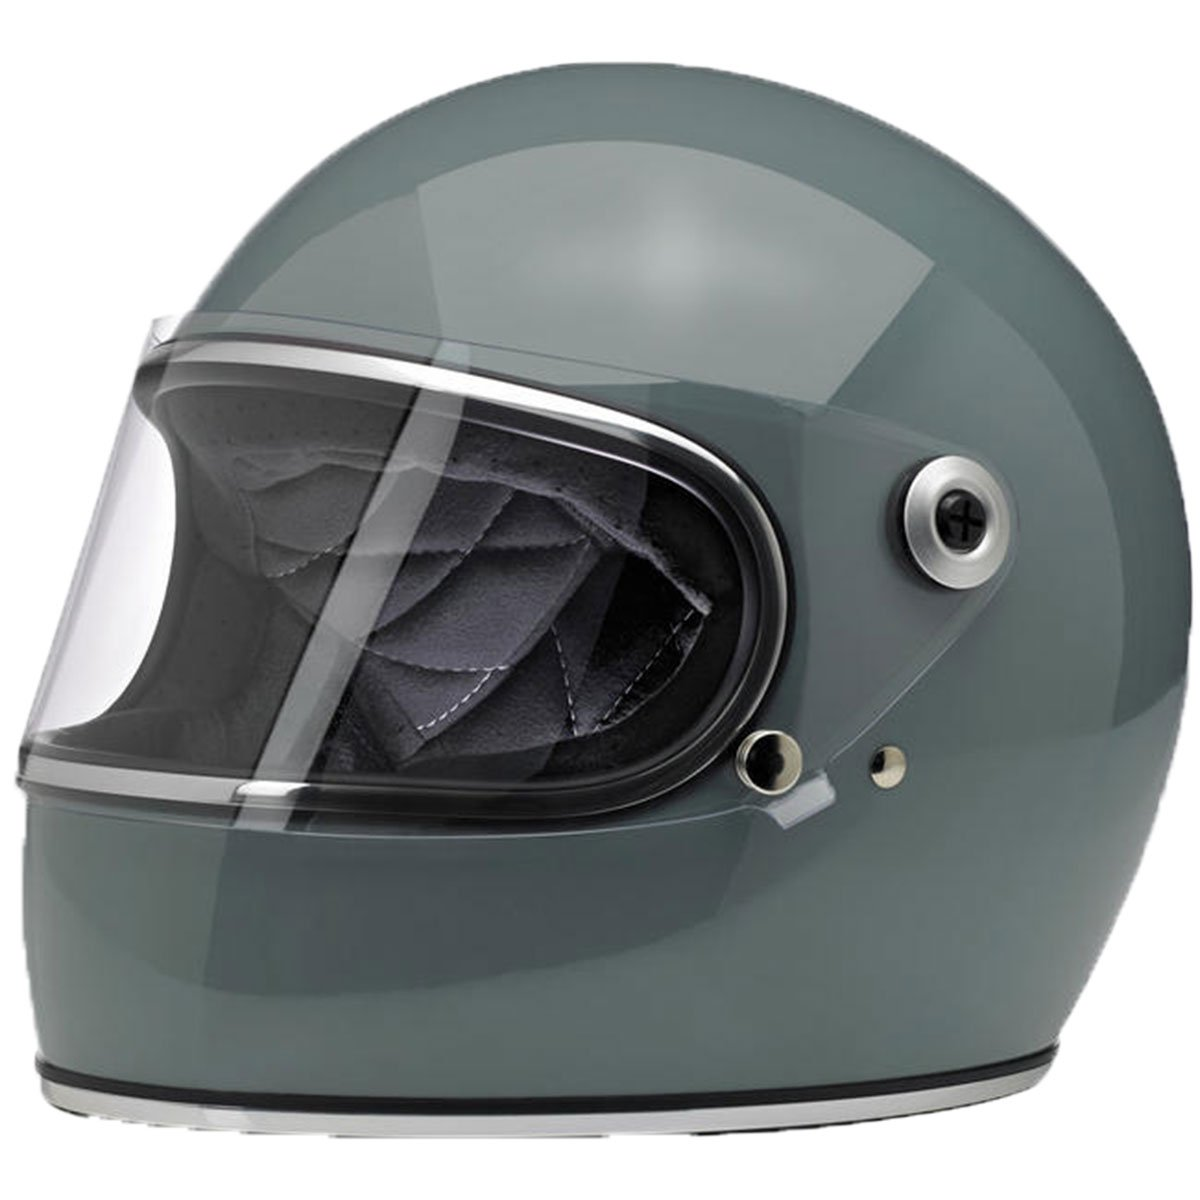 Gloss Agave//X-Large 0101-9904 Biltwell Gringo S Solid Full-face Motorcycle Helmet